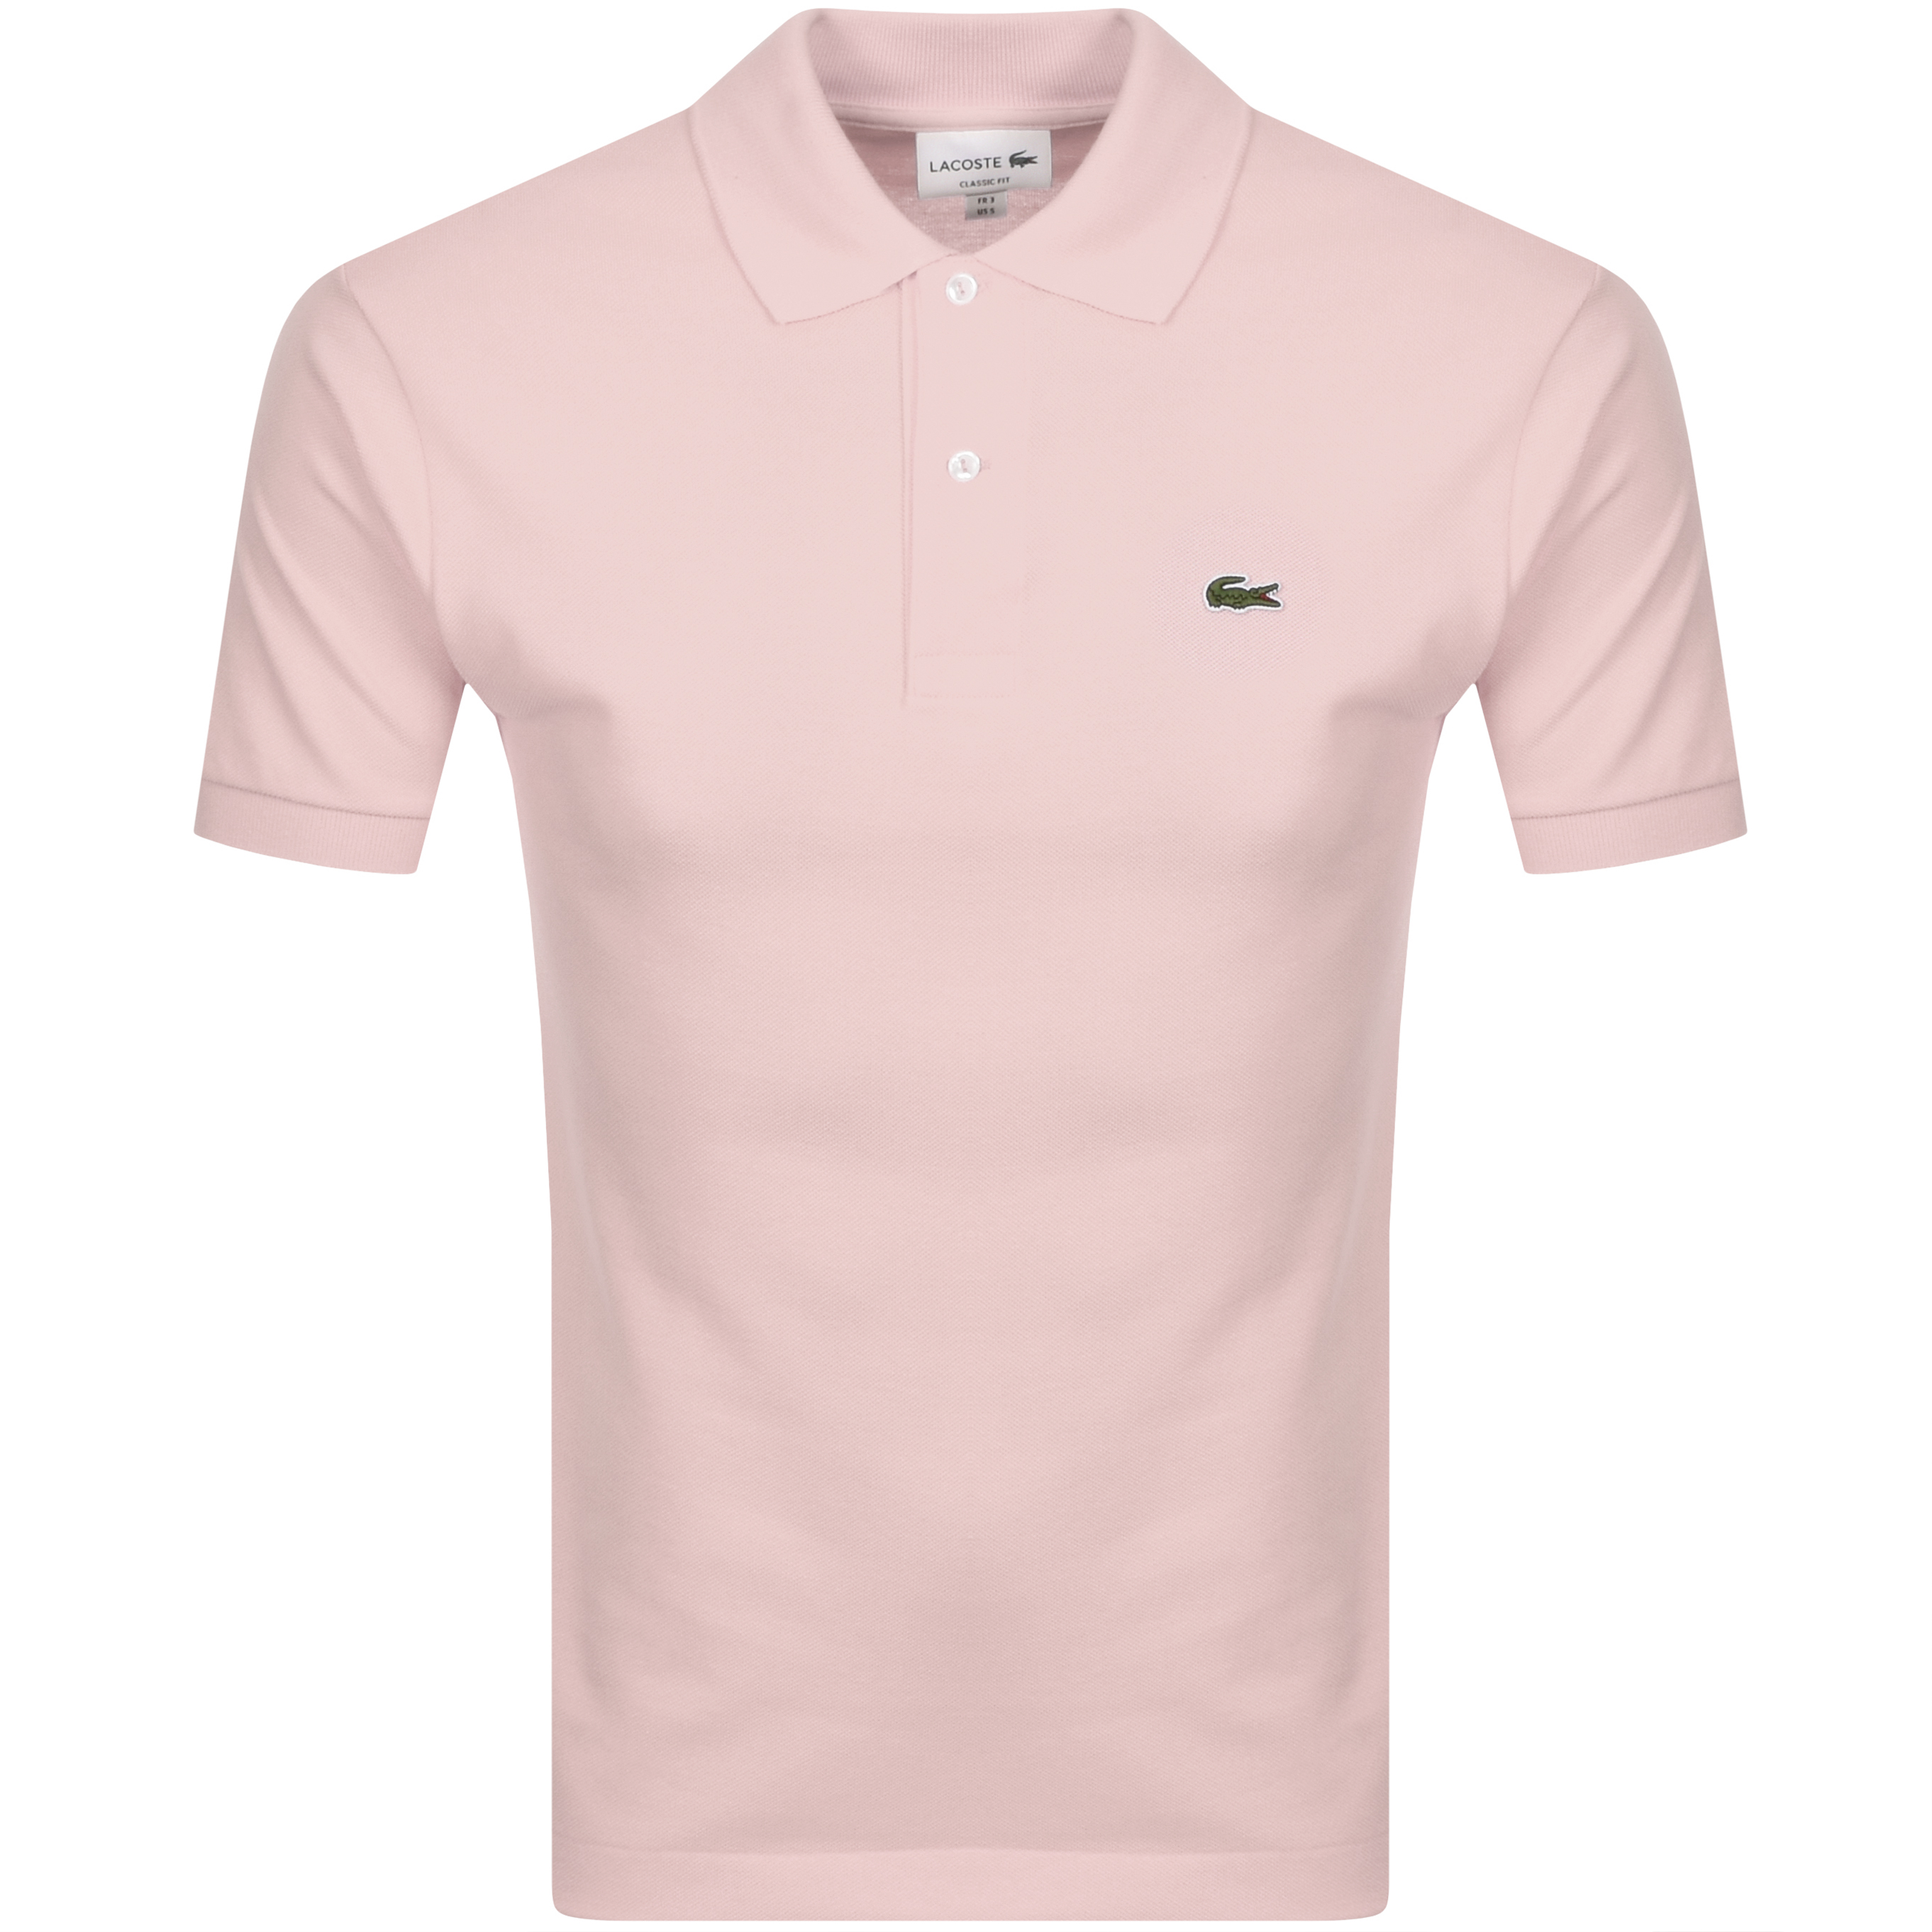 Lacoste Short Sleeved Polo T Shirt Pink